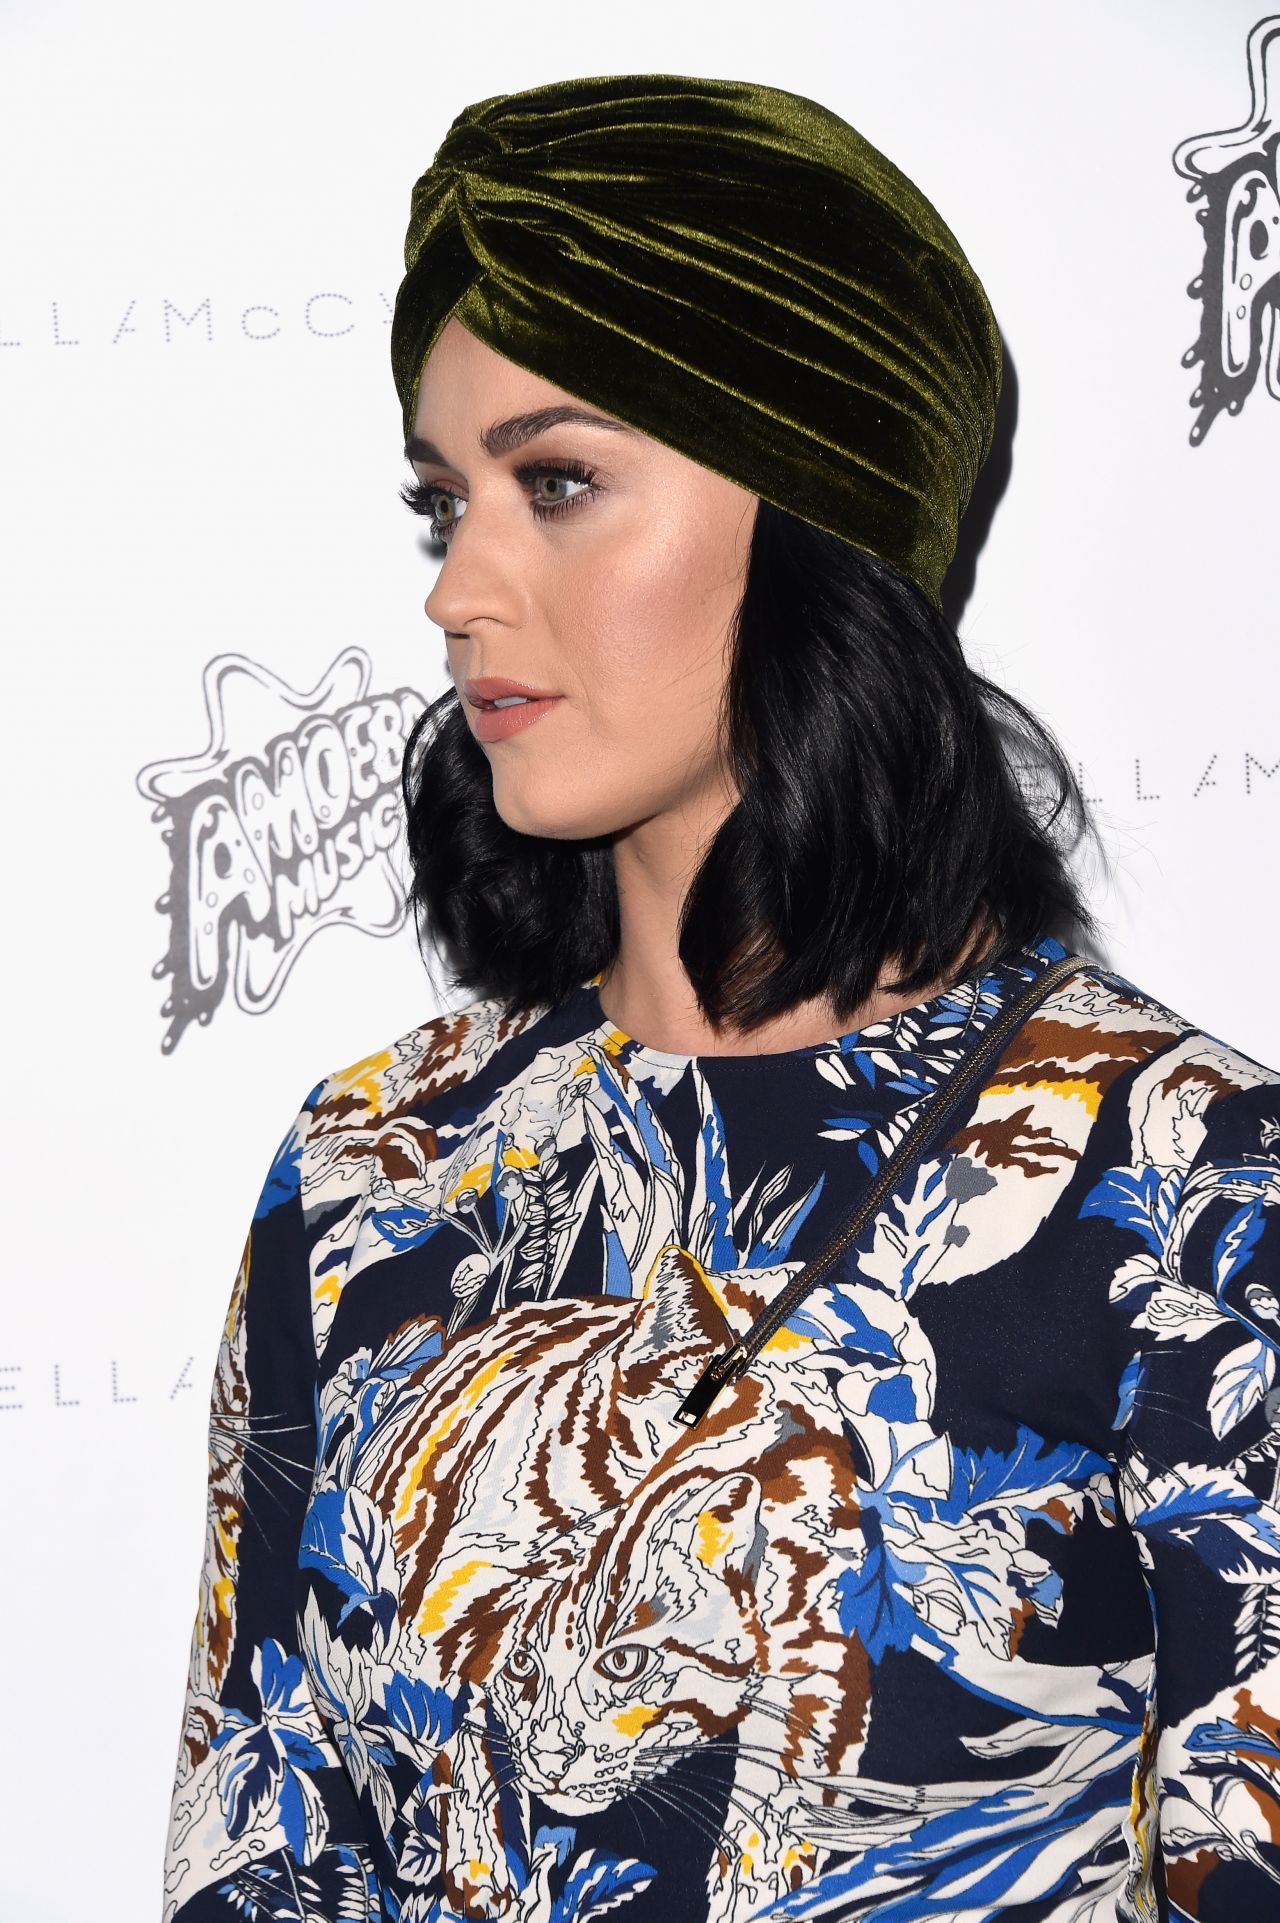 katy-perry-stella-mccartney-autumn-2016-presentation-in-los-angeles-ca-11